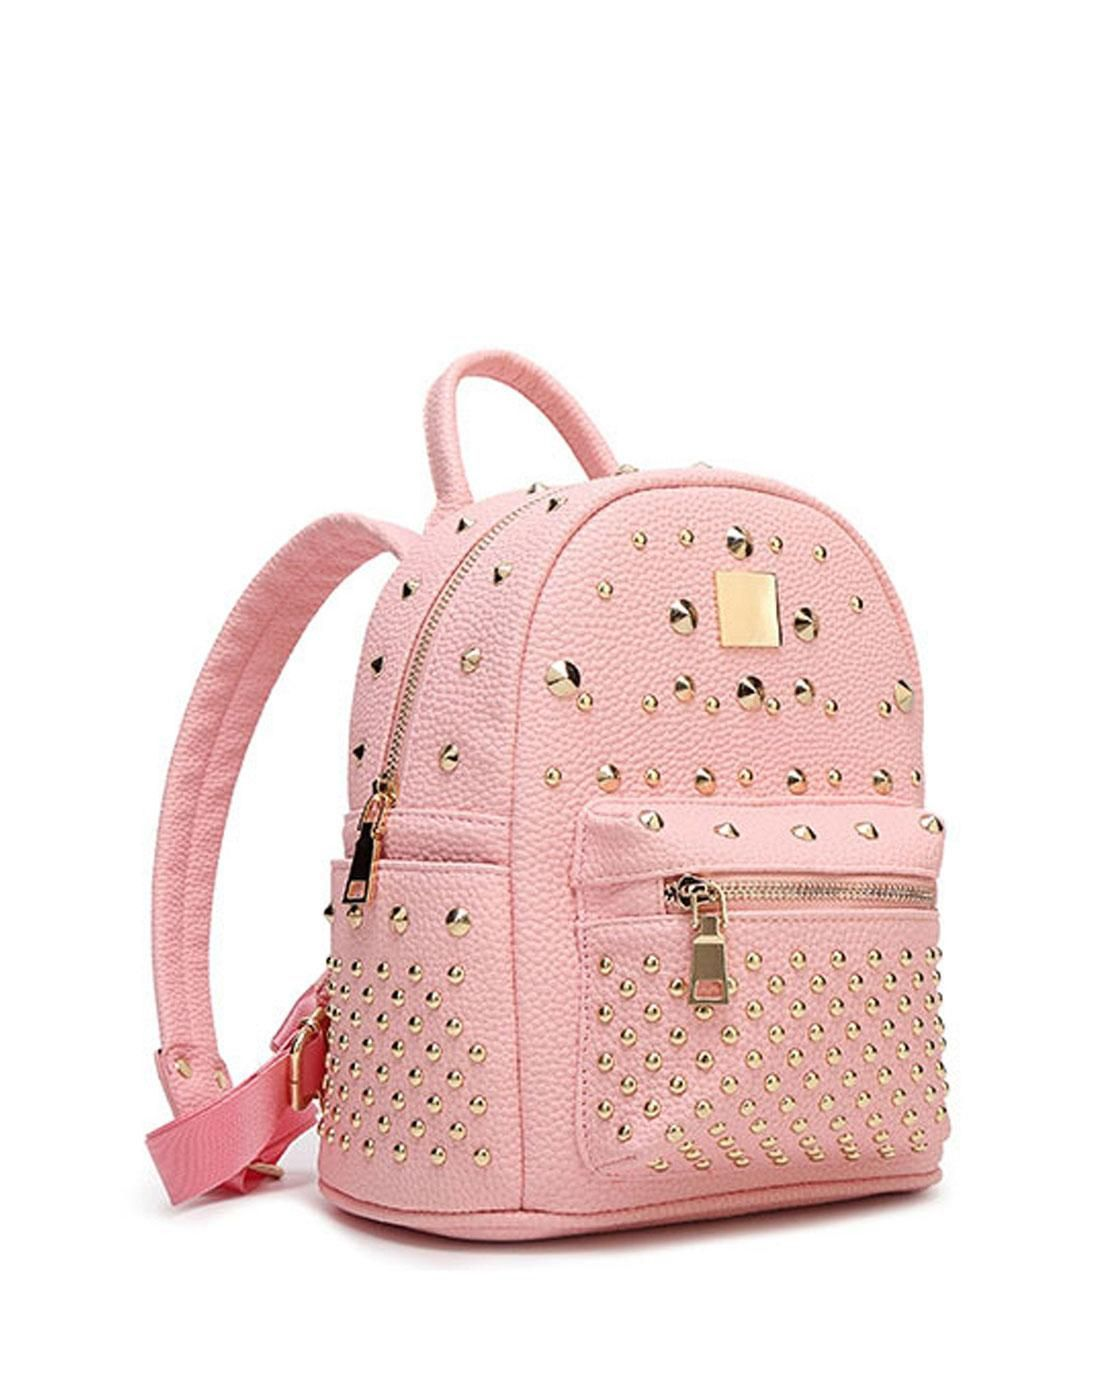 AdoreWe  VIPme Backpacks - SVMONO Pink School Bags Backpacks for College  Girls - AdoreWe.com 14b14c3a77a69